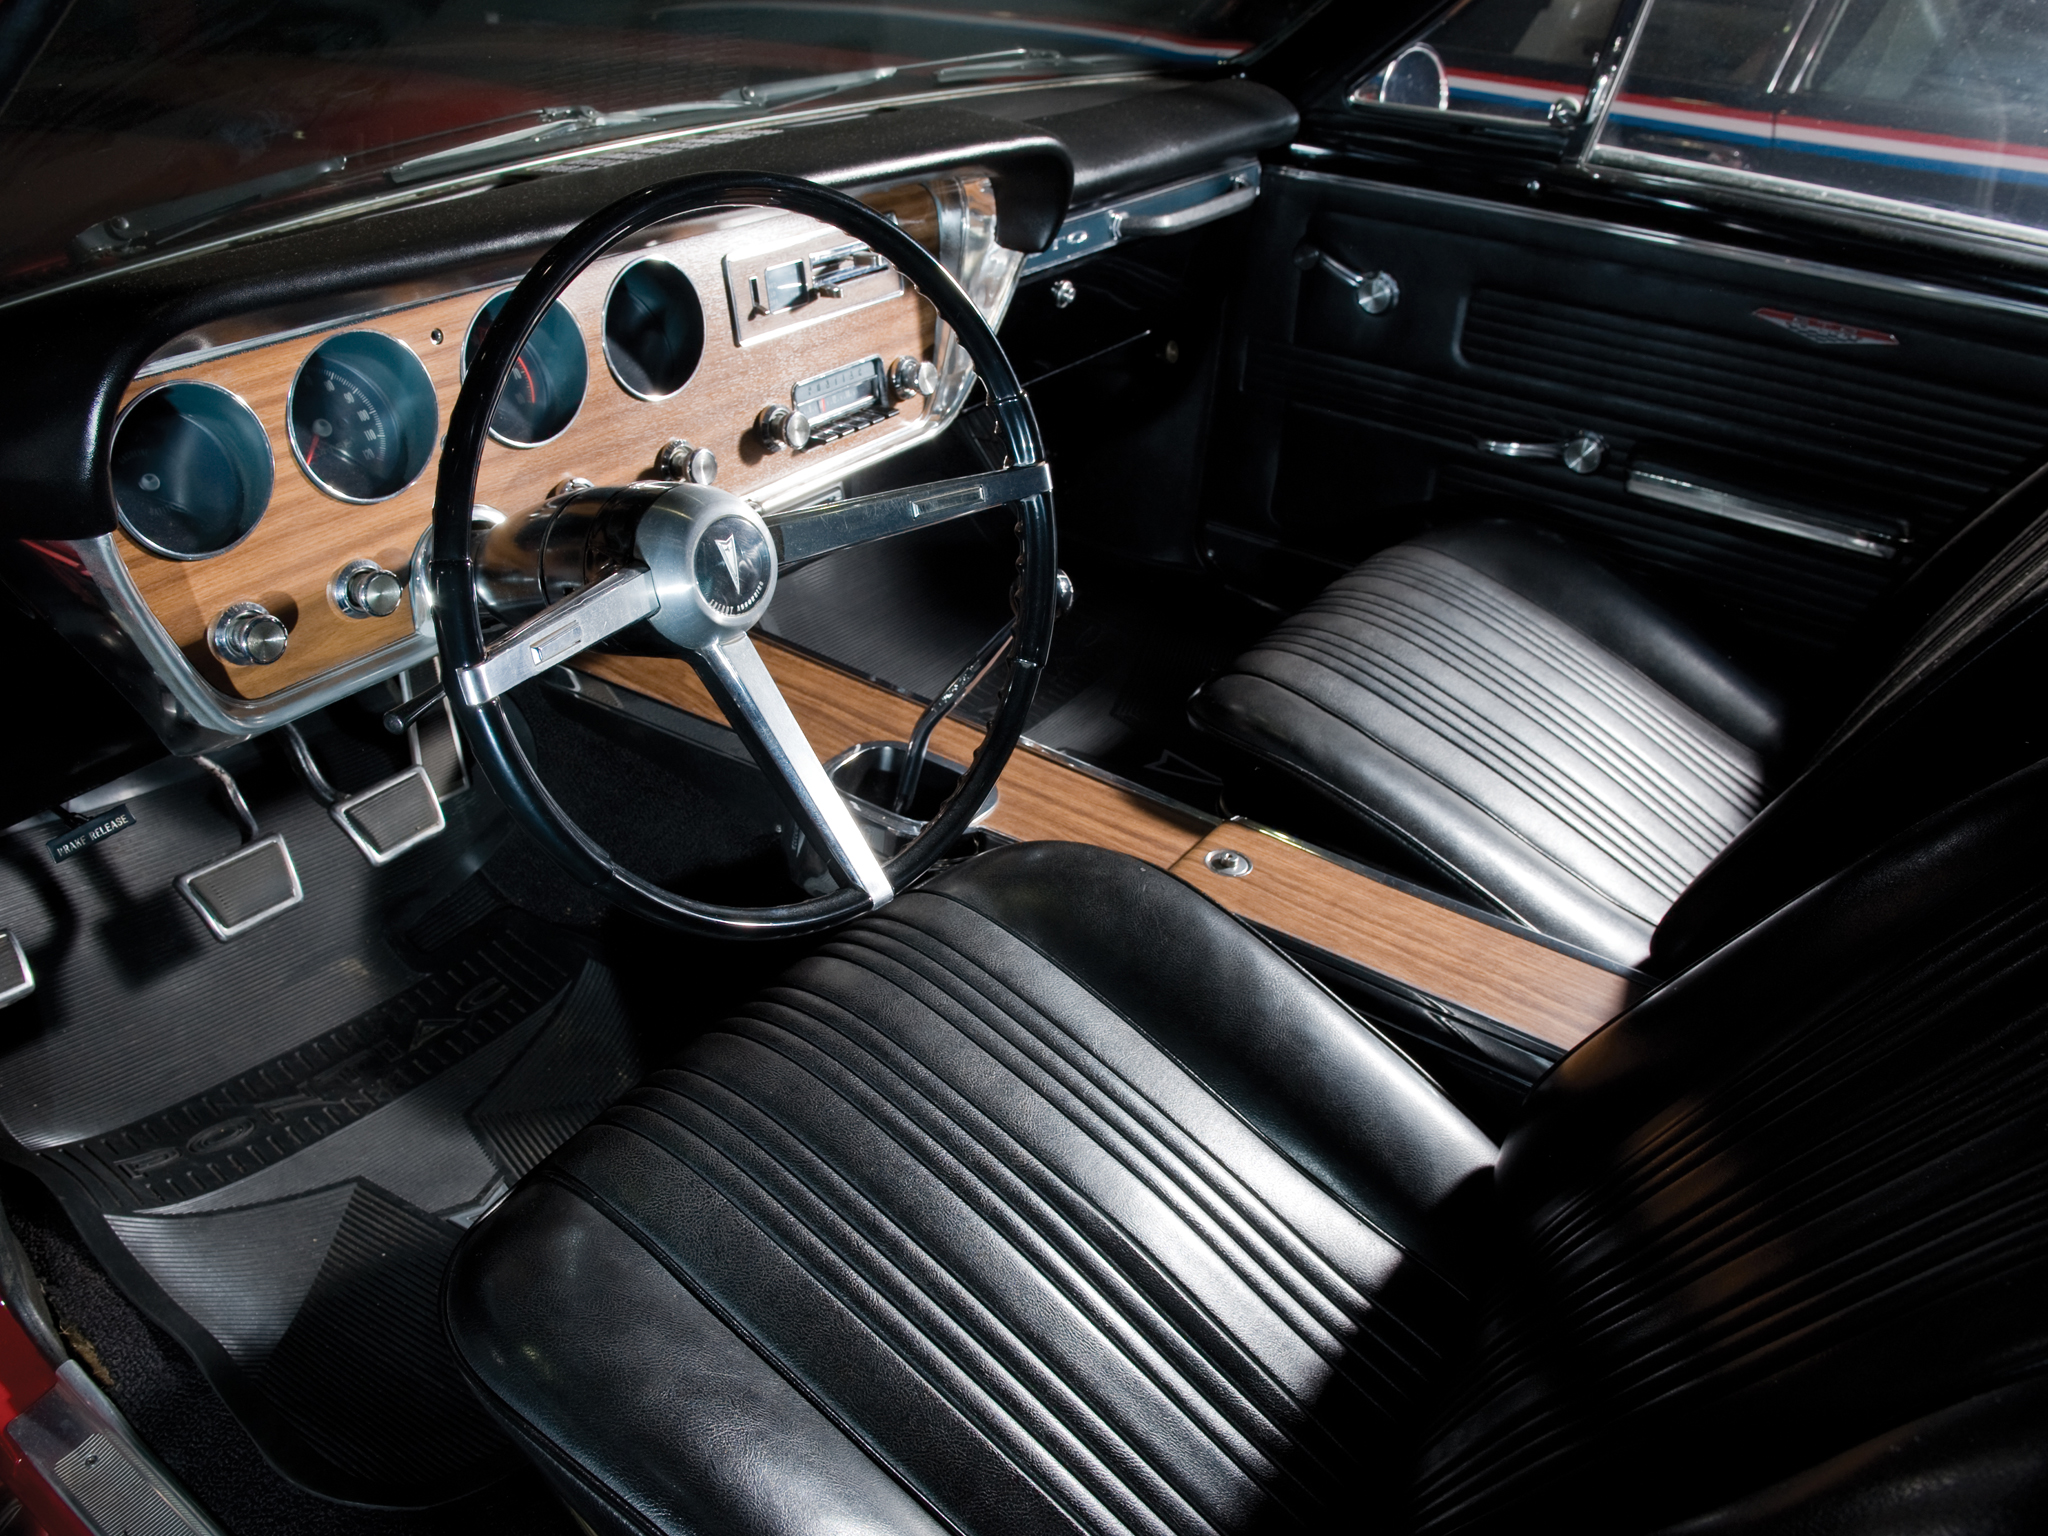 1967 Pontiac Tempest GTO Hardtop Coupe muscle classic interior g 2048x1536